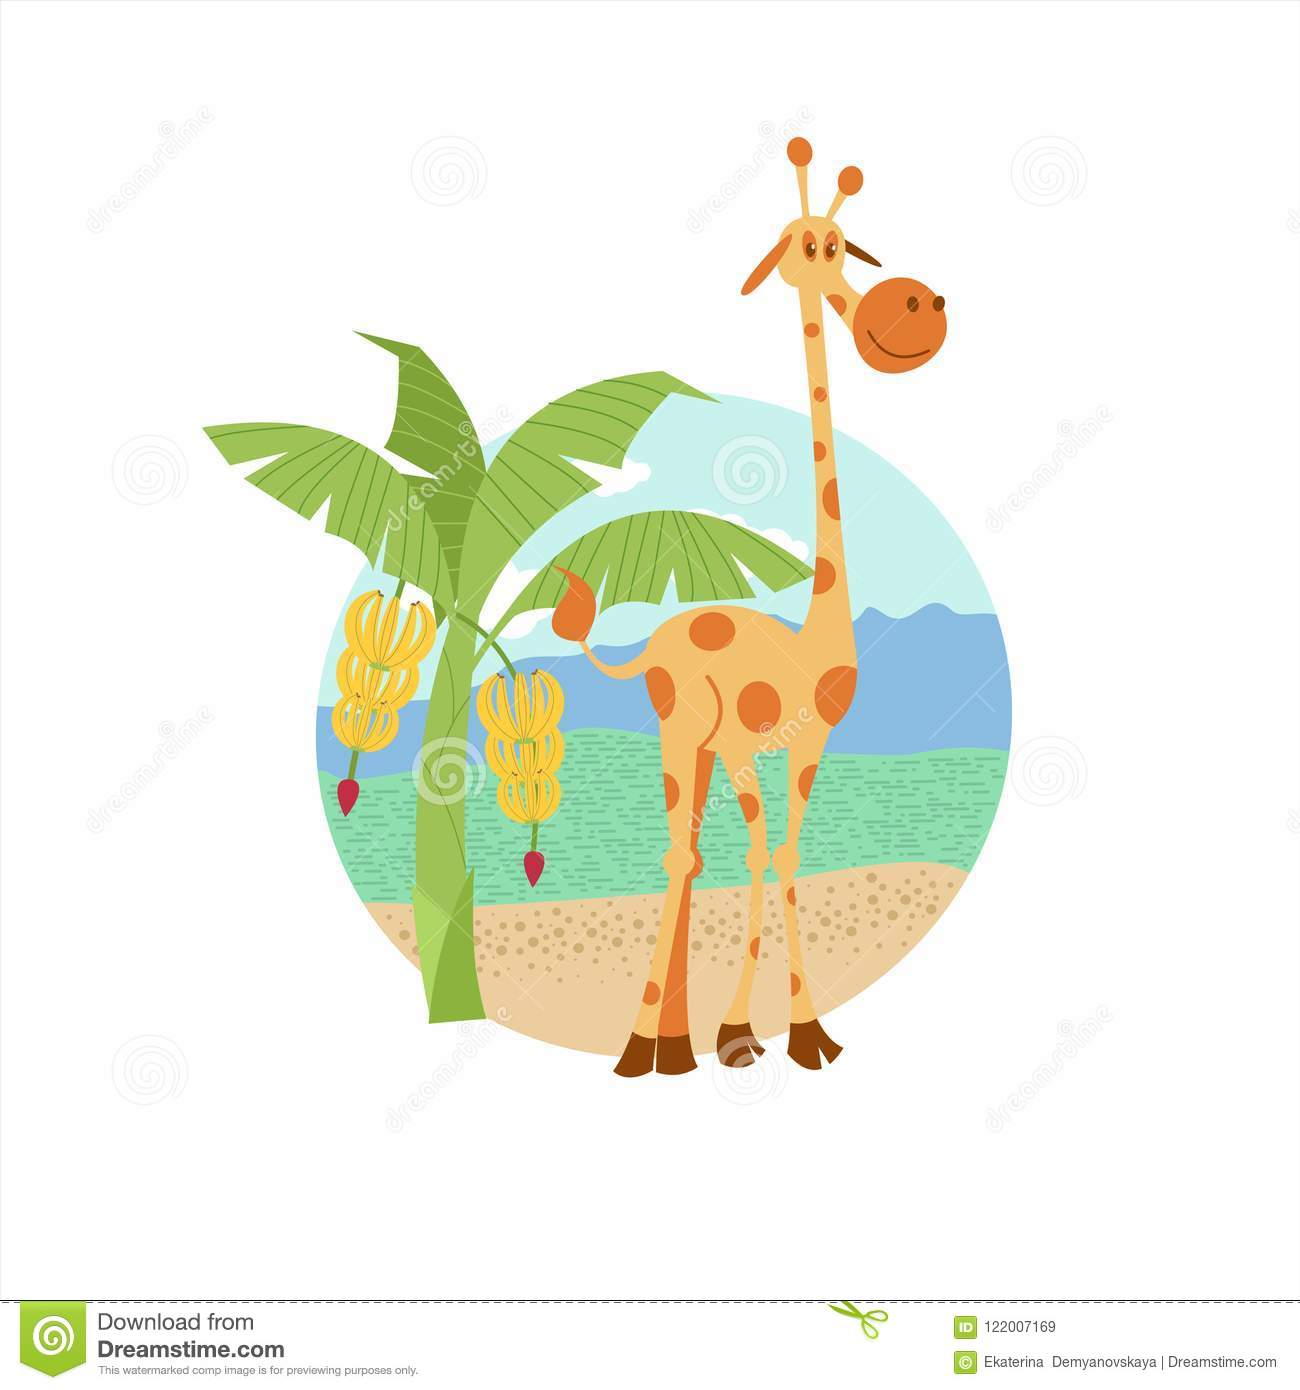 Africa Vector Illustration In Cartoon Style A Cute Giraffe Is Standing Near A Banana Palm Tree Stock Vector Illustration Of Funny Background 122007169 We have 291 free africa tree vector logos, logo templates and icons. dreamstime com